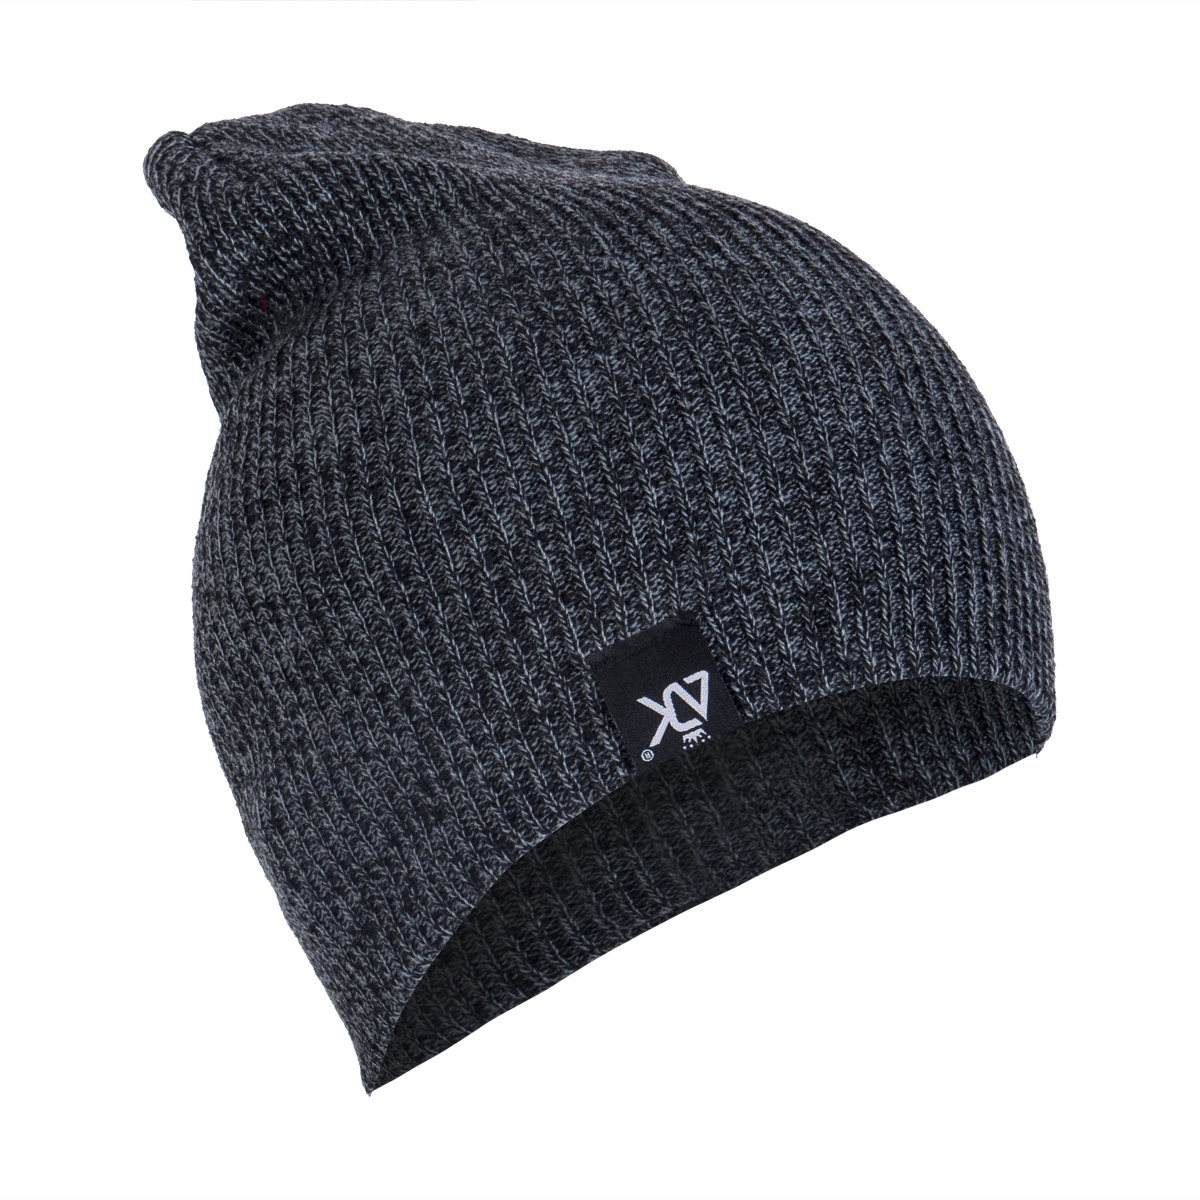 Mens Womens Wool Knit Baggy Beanie Winter Hat Ski Slouchy Chic Knitted Cap New